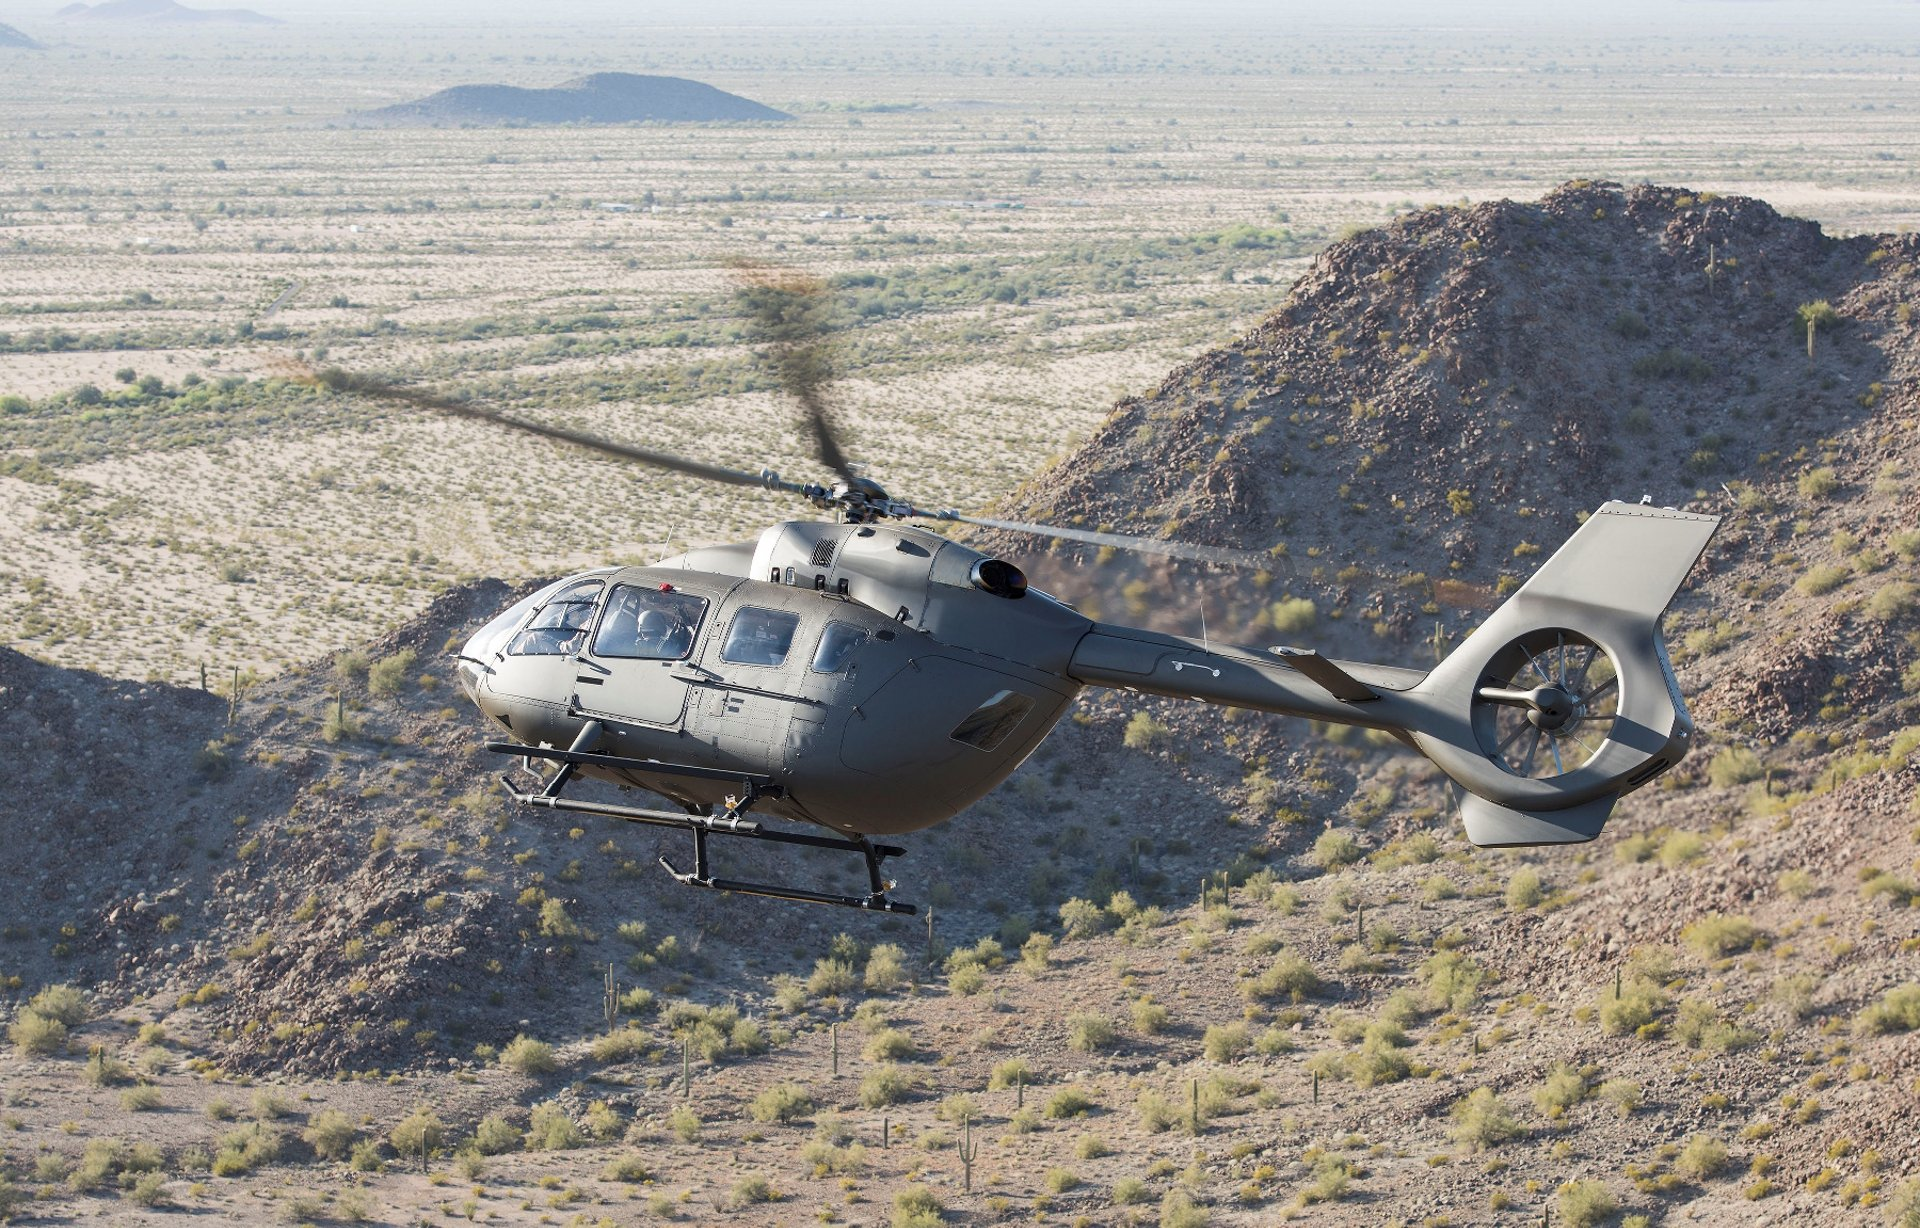 Concept image of the Lakota UH-72B, which will enter operation in 2021. Airbus photo.